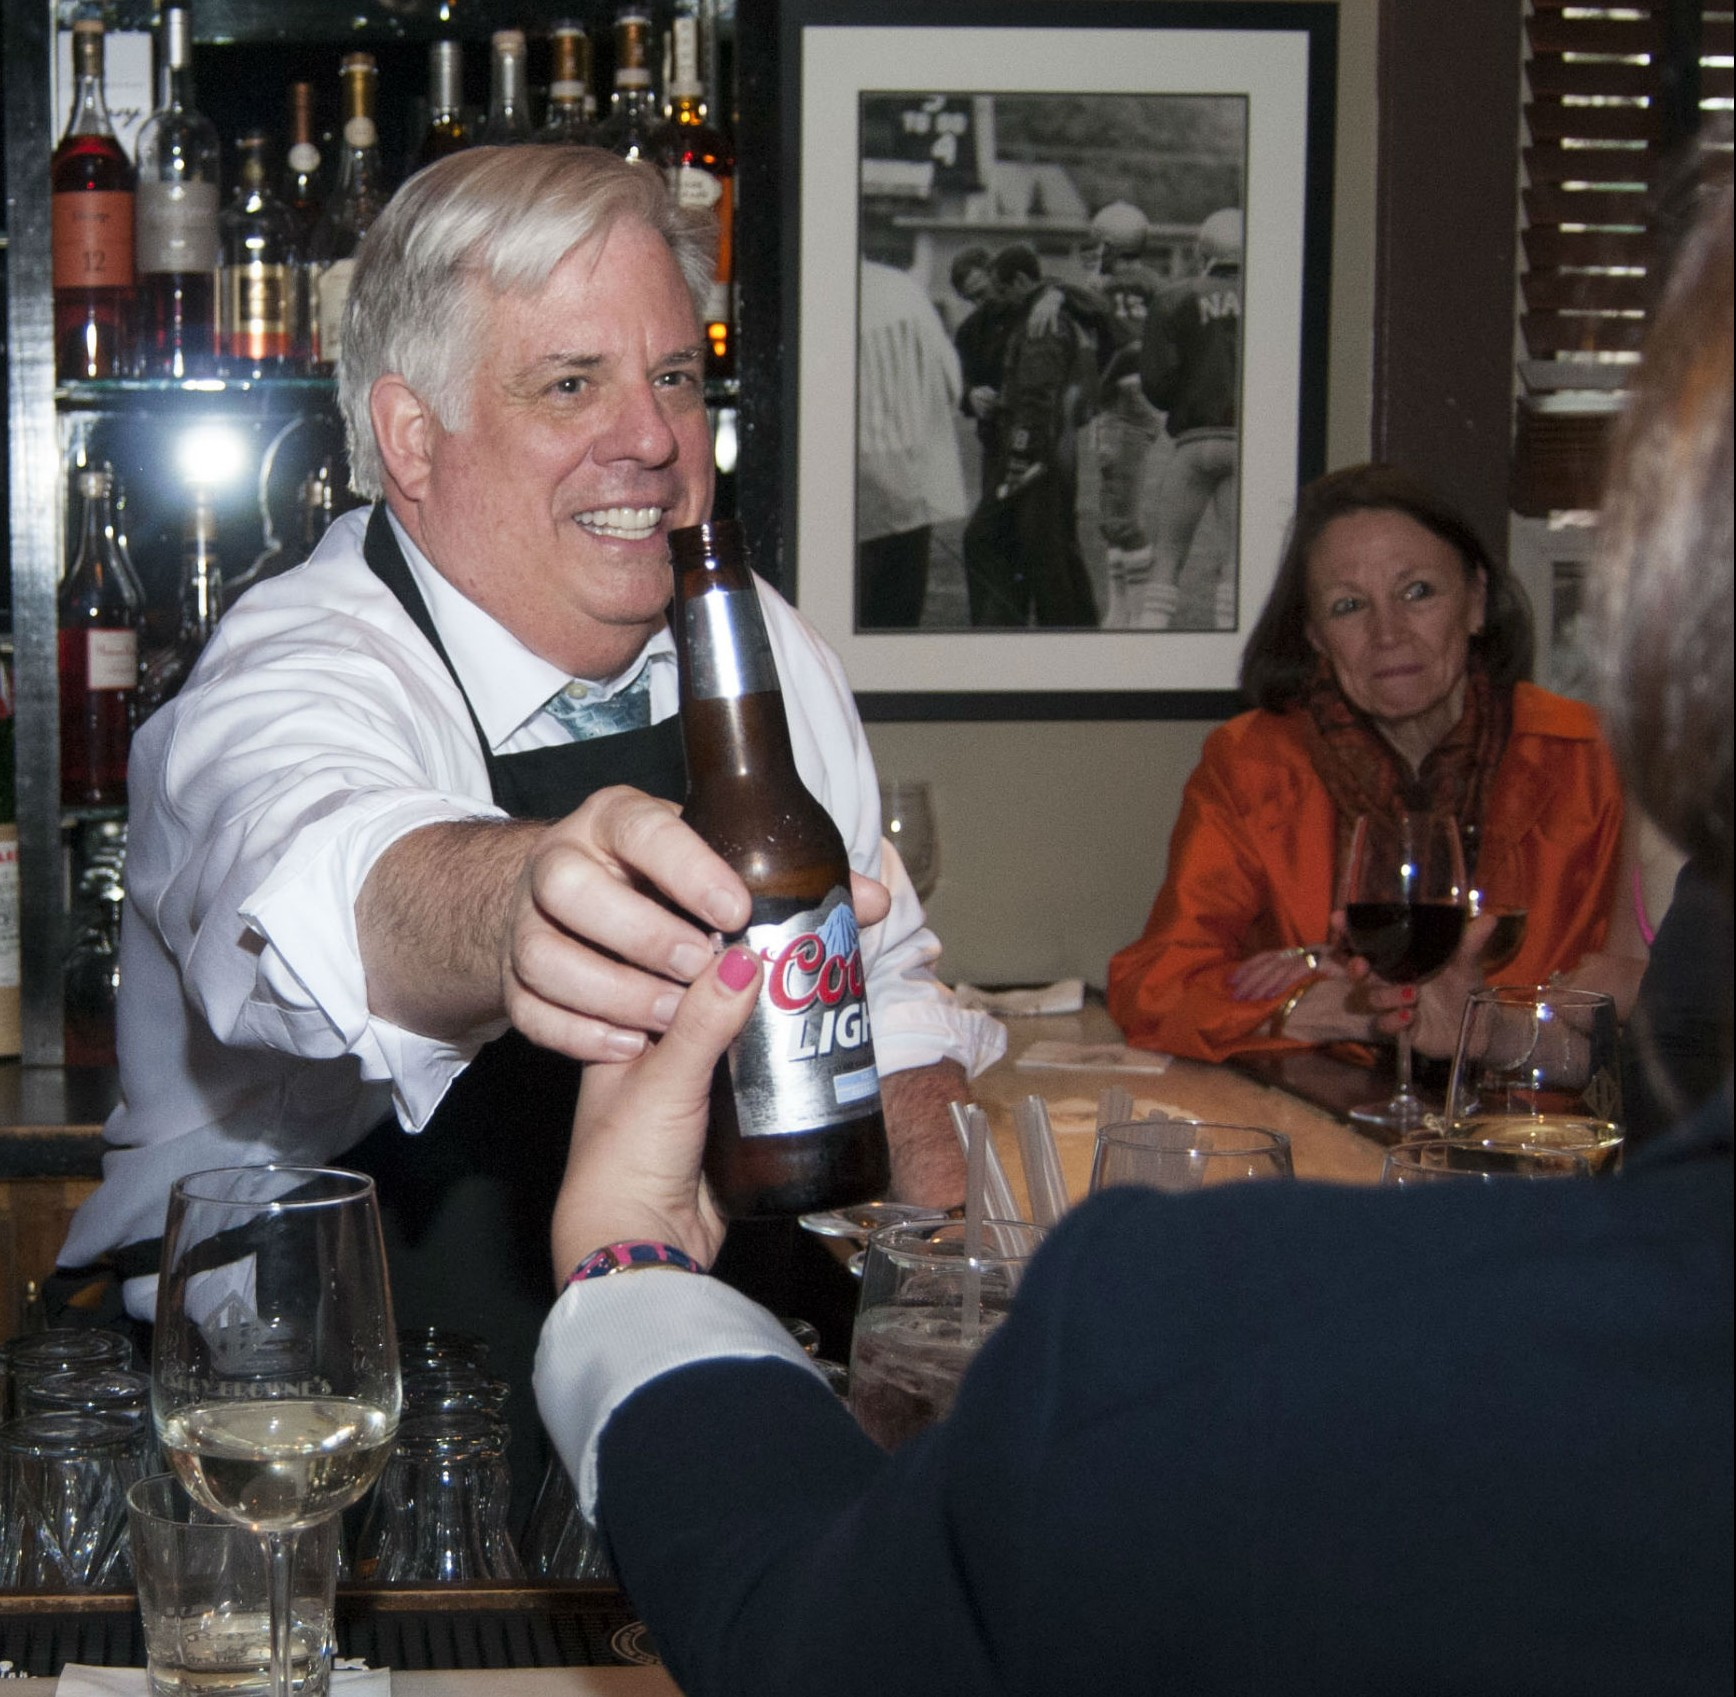 Supporting news coverage at State House: We'll drink to that